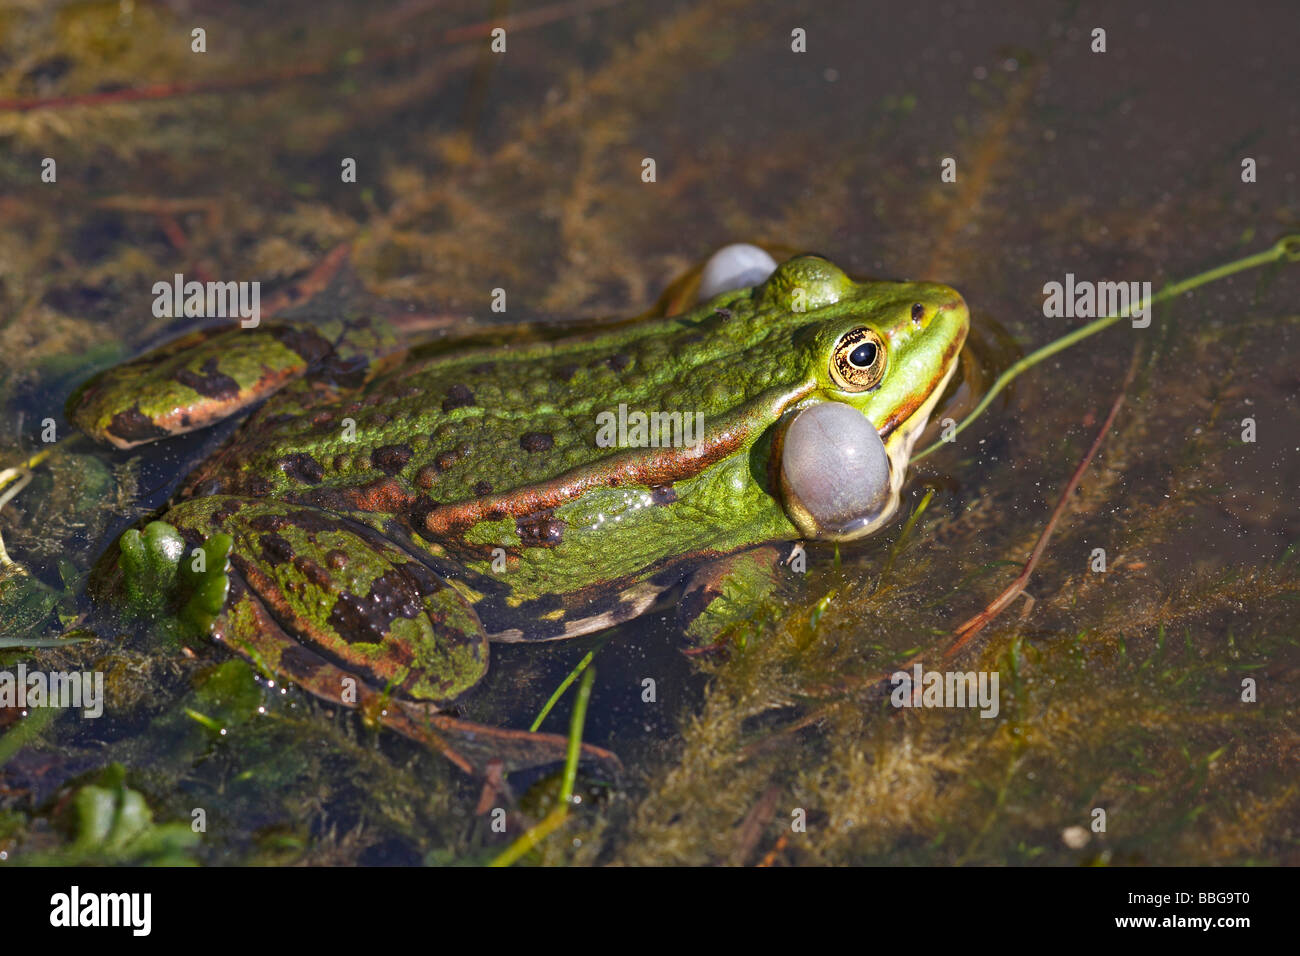 European edible frog (Rana esculenta), with inflated vocal sac - Stock Image